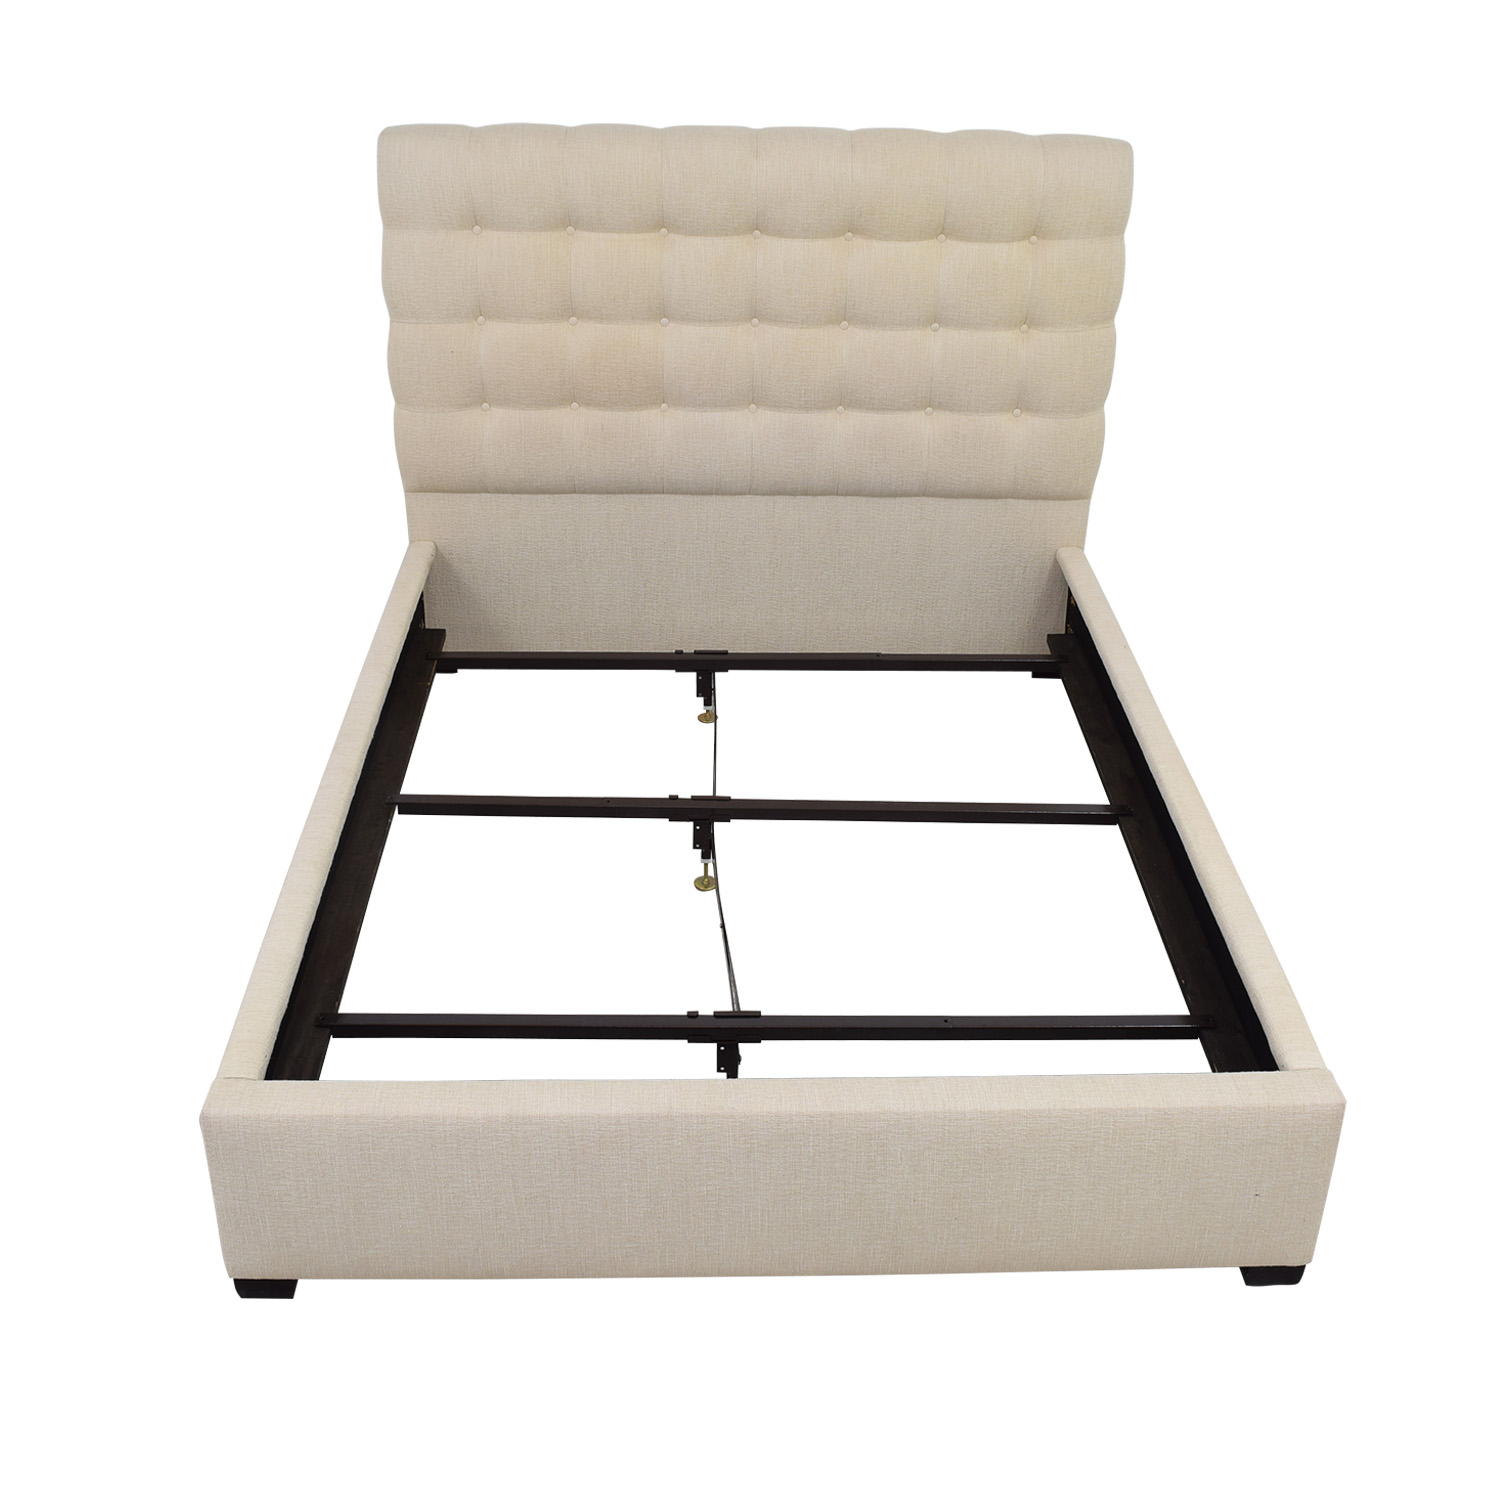 shop Raymour & Flanigan Beige Tufted Contemporary Dana Queen Bed Frame Raymour & Flanigan Bed Frames